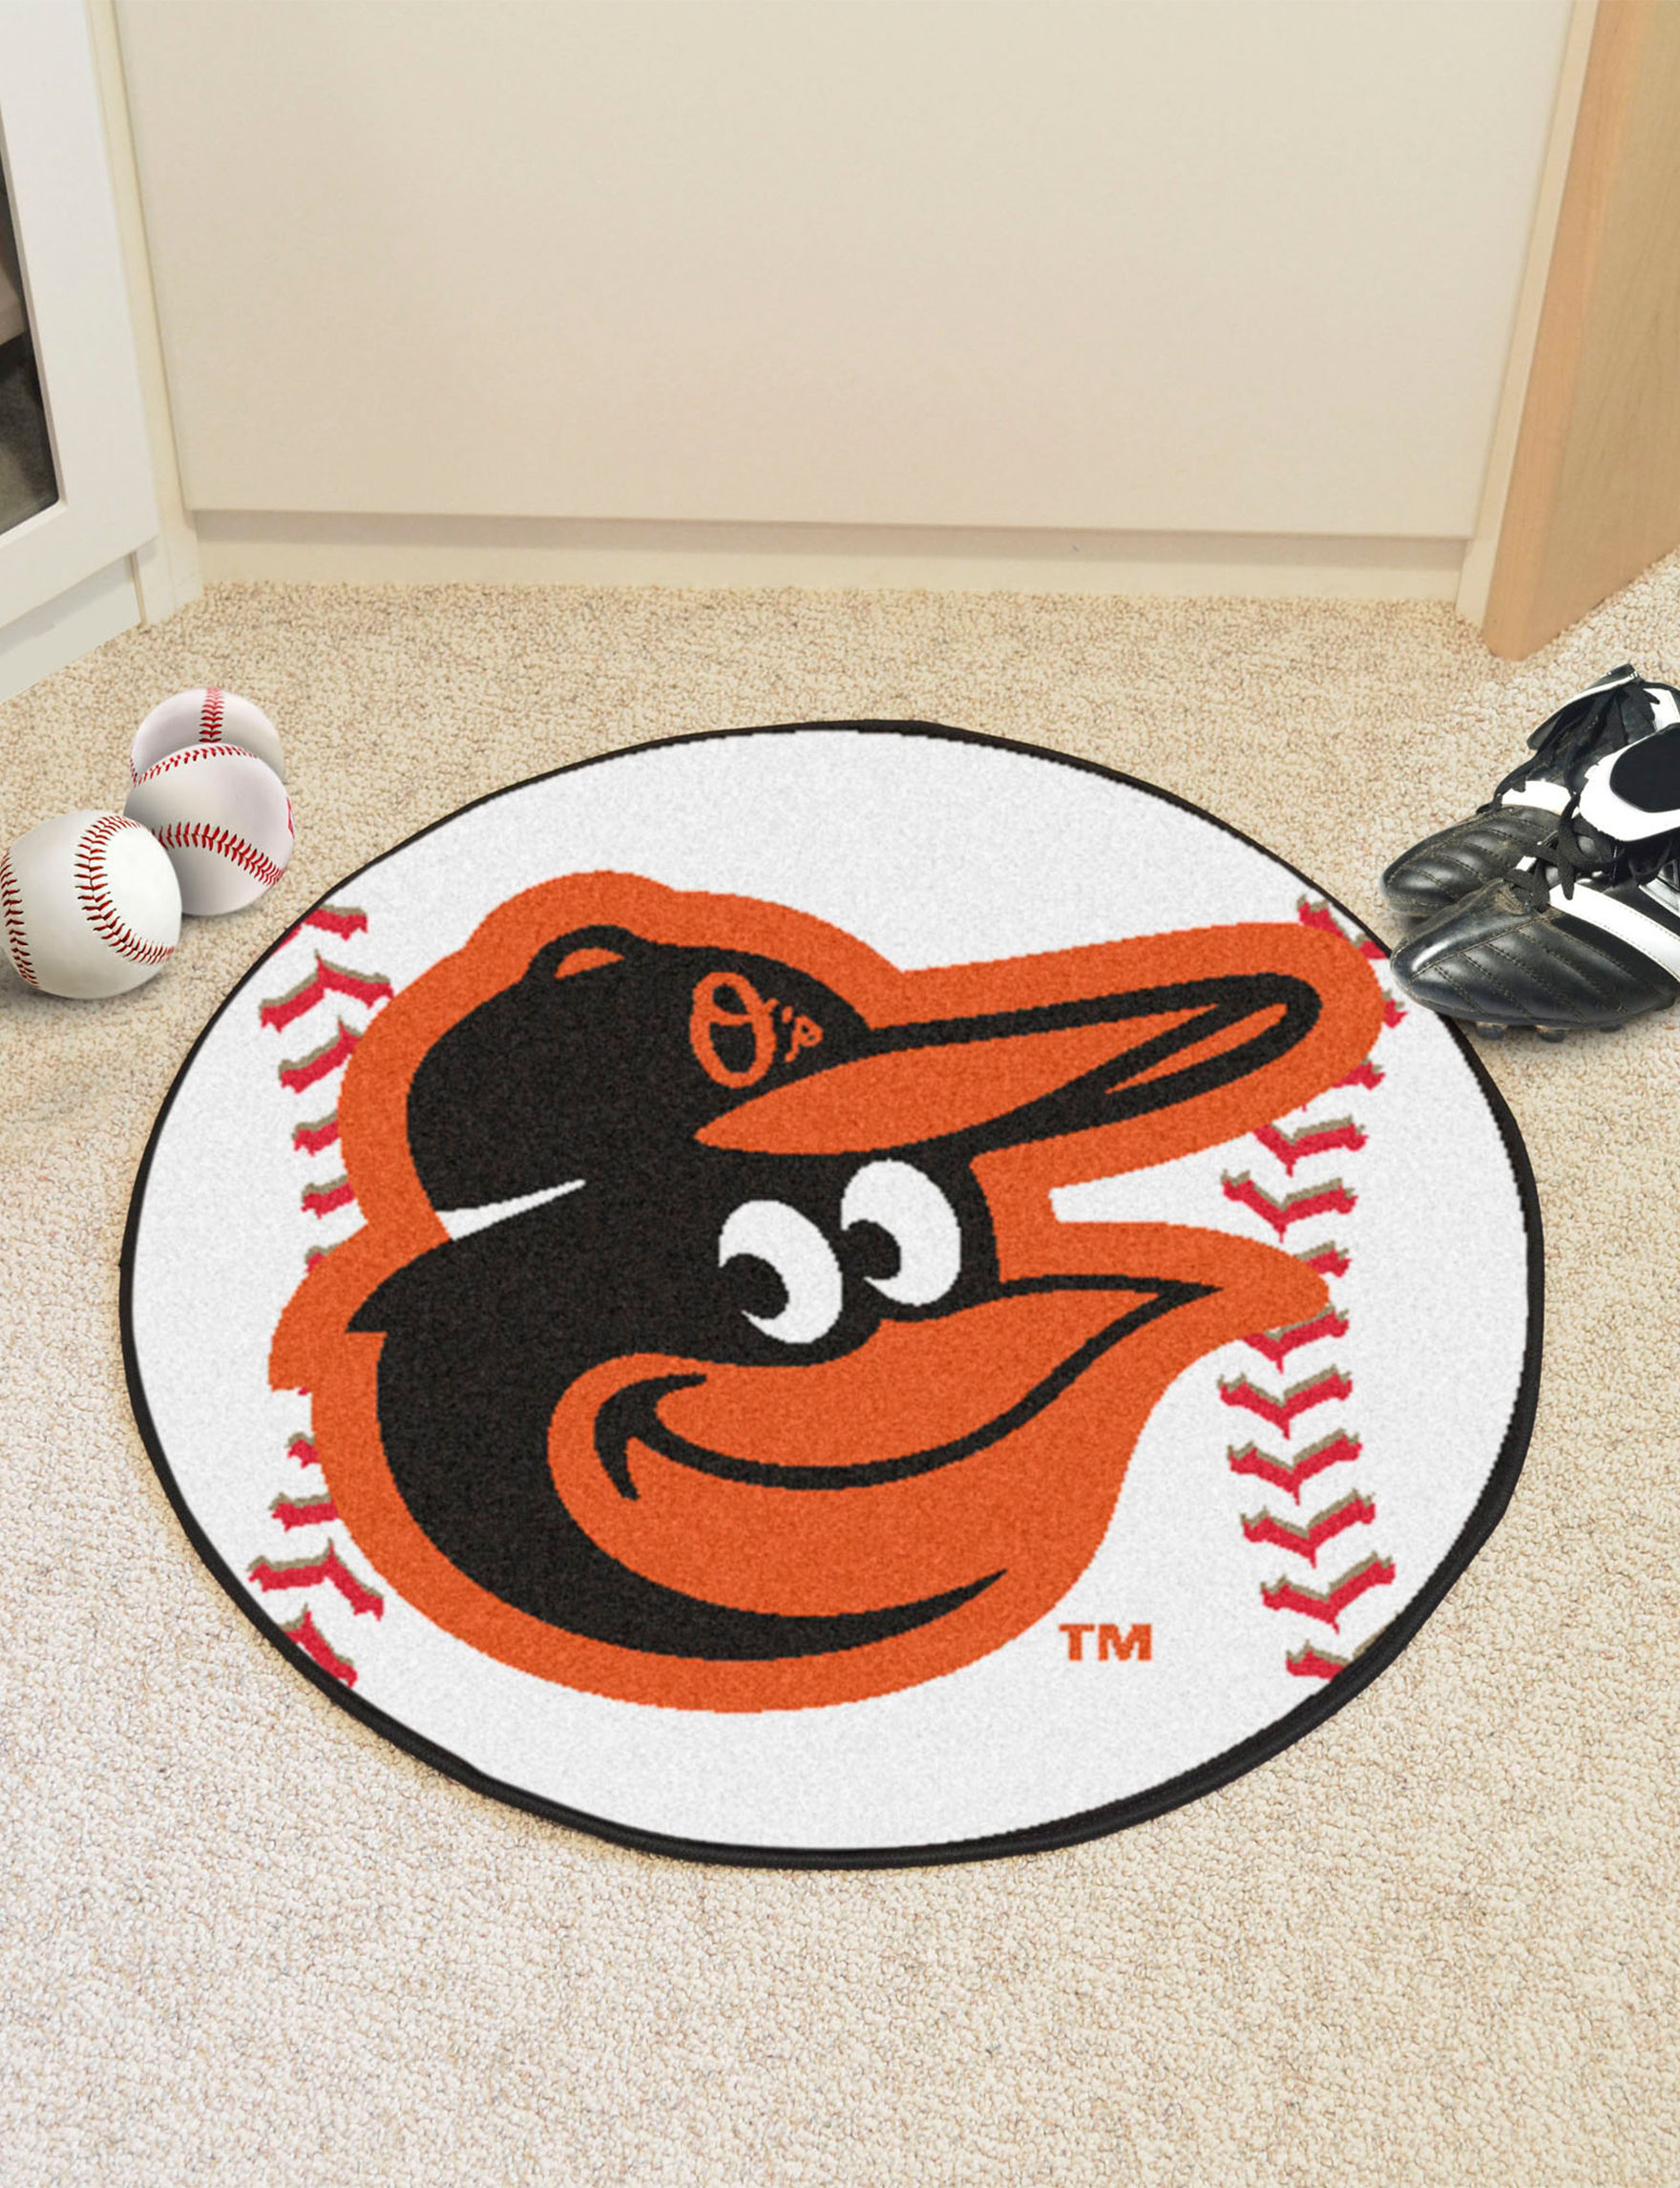 Fanmats Orange Accent Rugs Bath Rugs & Mats MLB